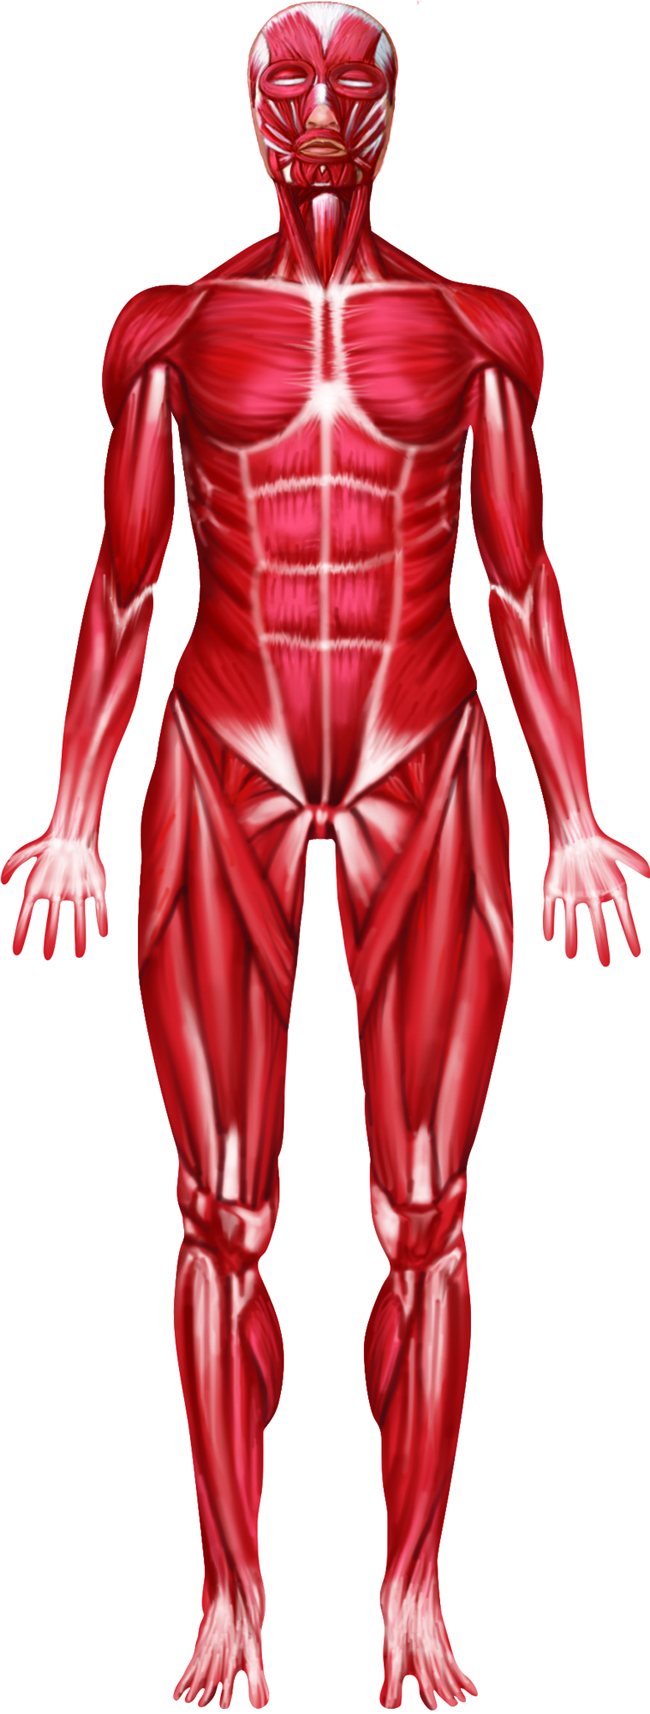 muscular system related keywords